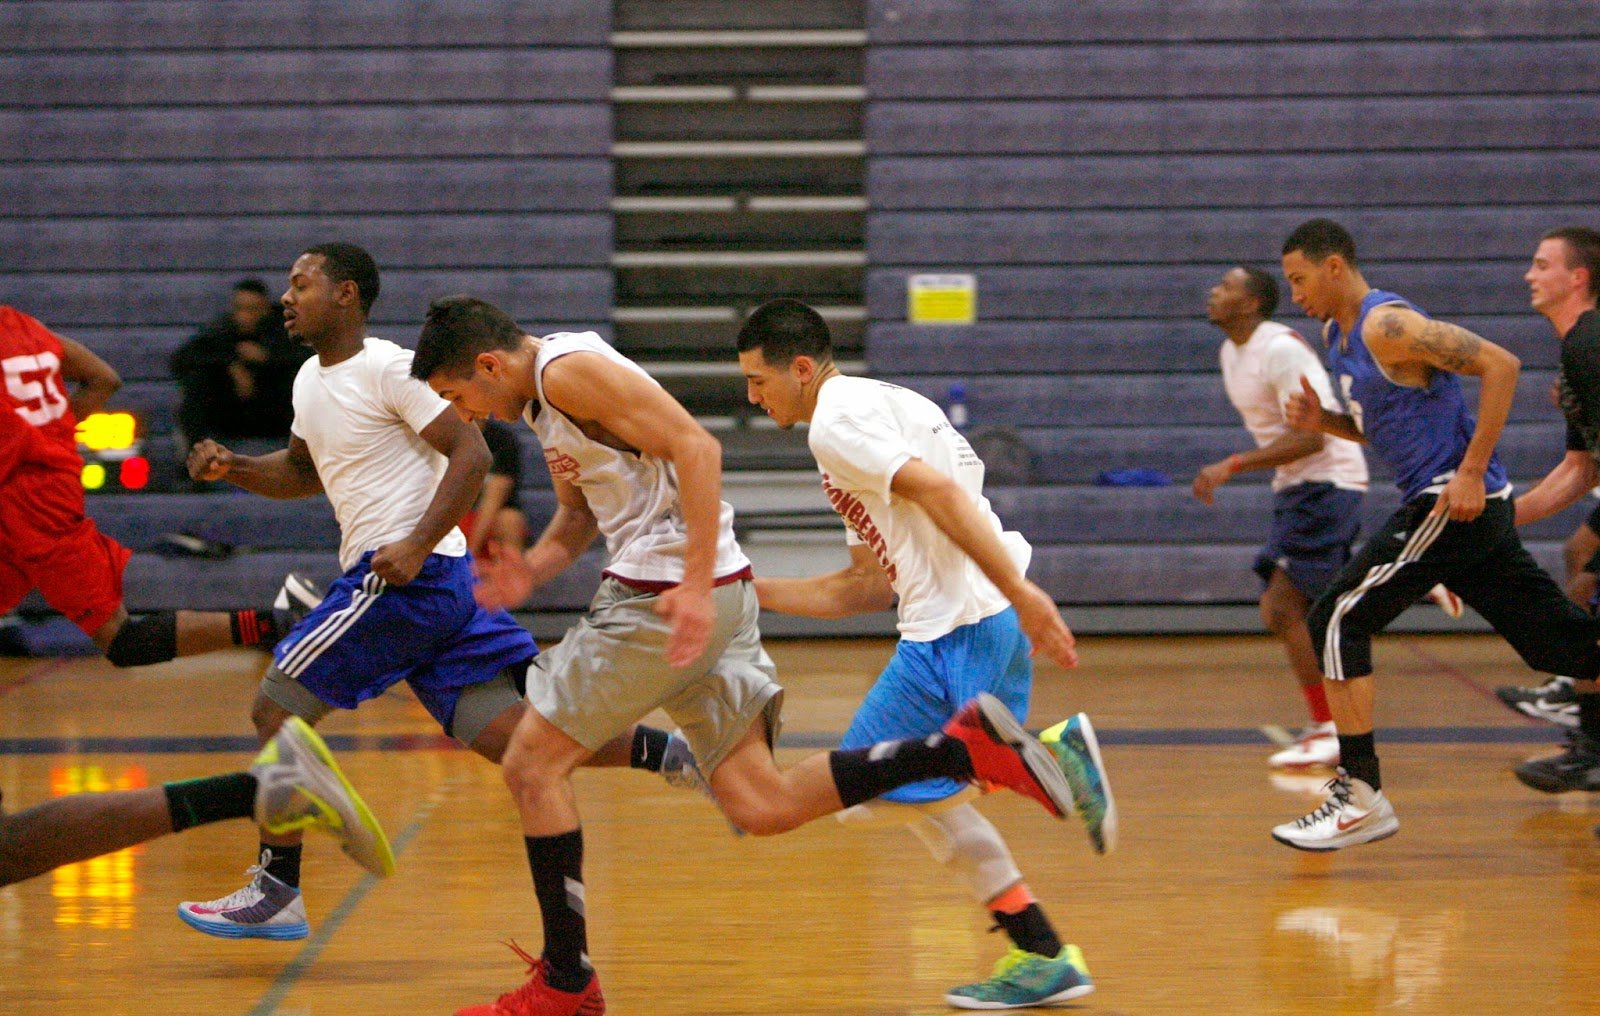 3 Ways Basketball Players Can Lead by Example in the Off-Season